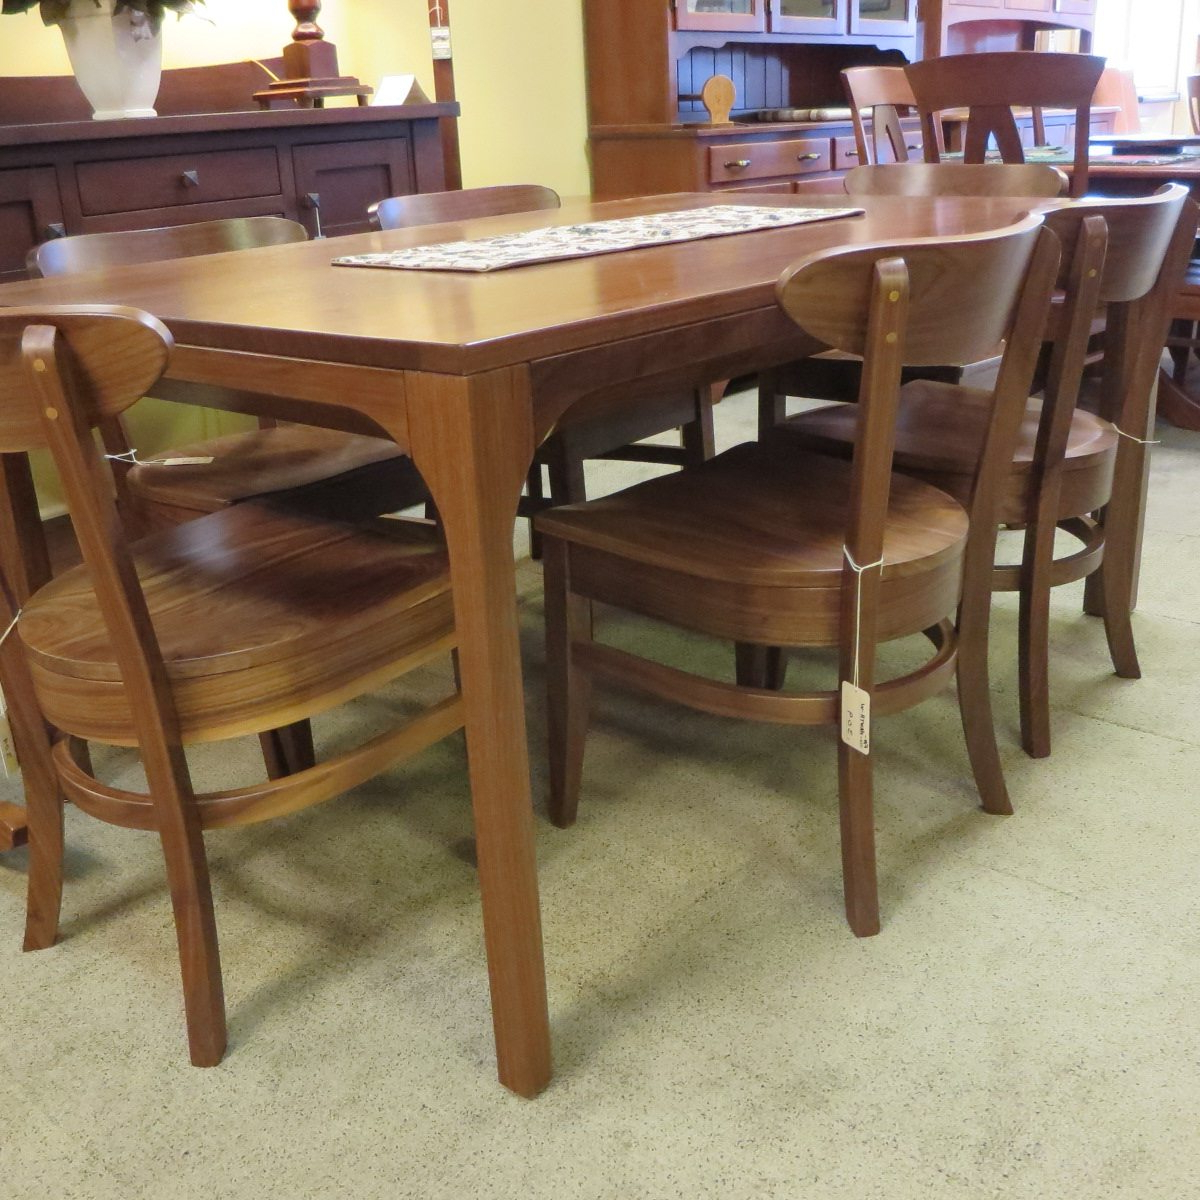 Contemporary / Modern Tables For Sale In Dayton Cincinnati Ohio With Regard To Preferred Cincinnati 3 Piece Dining Sets (View 12 of 20)